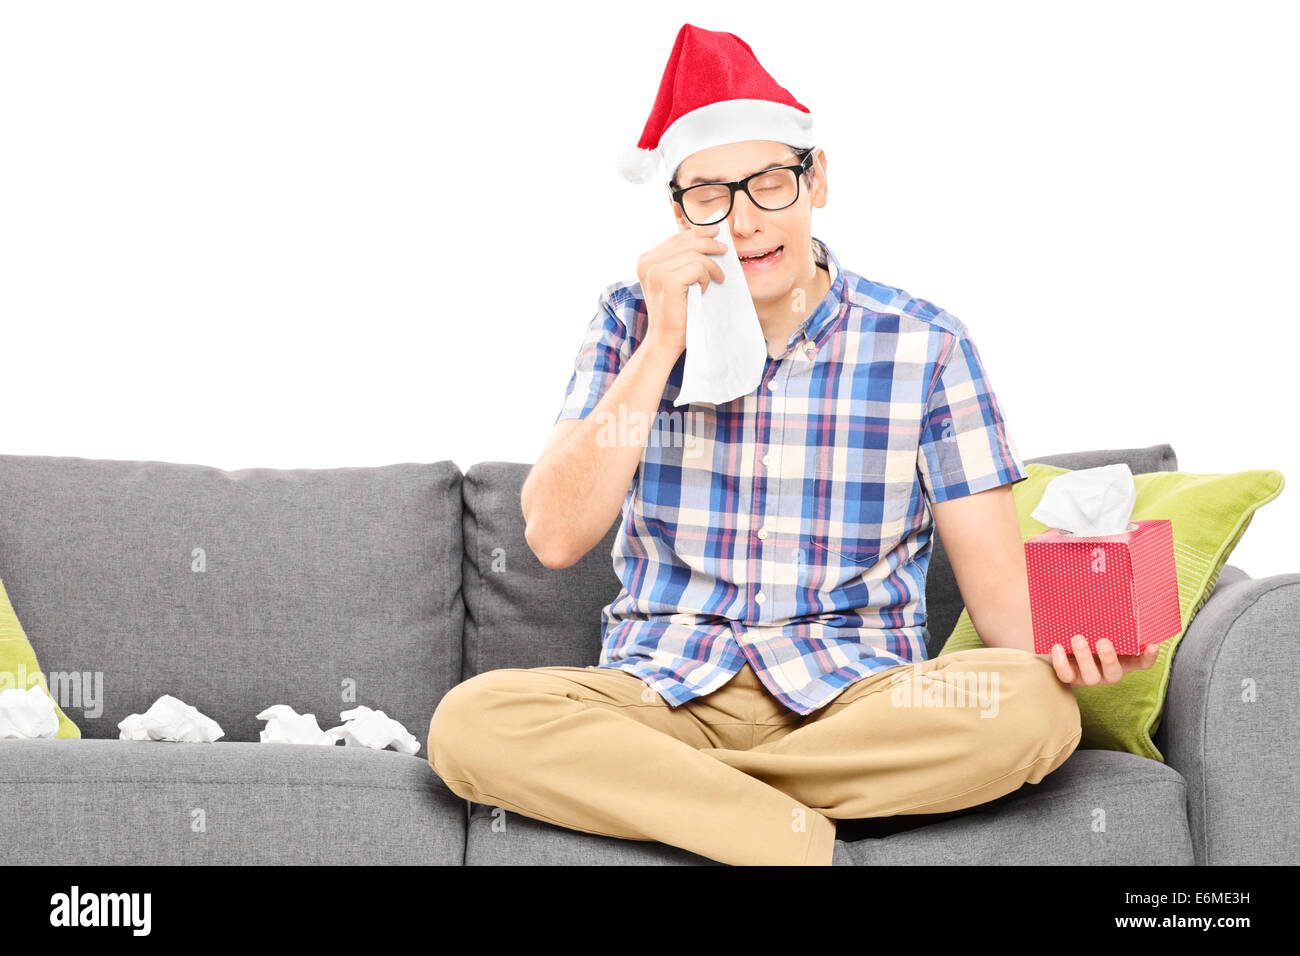 Sad man with Santa hat wiping his eyes from crying isolated on white - Stock Image